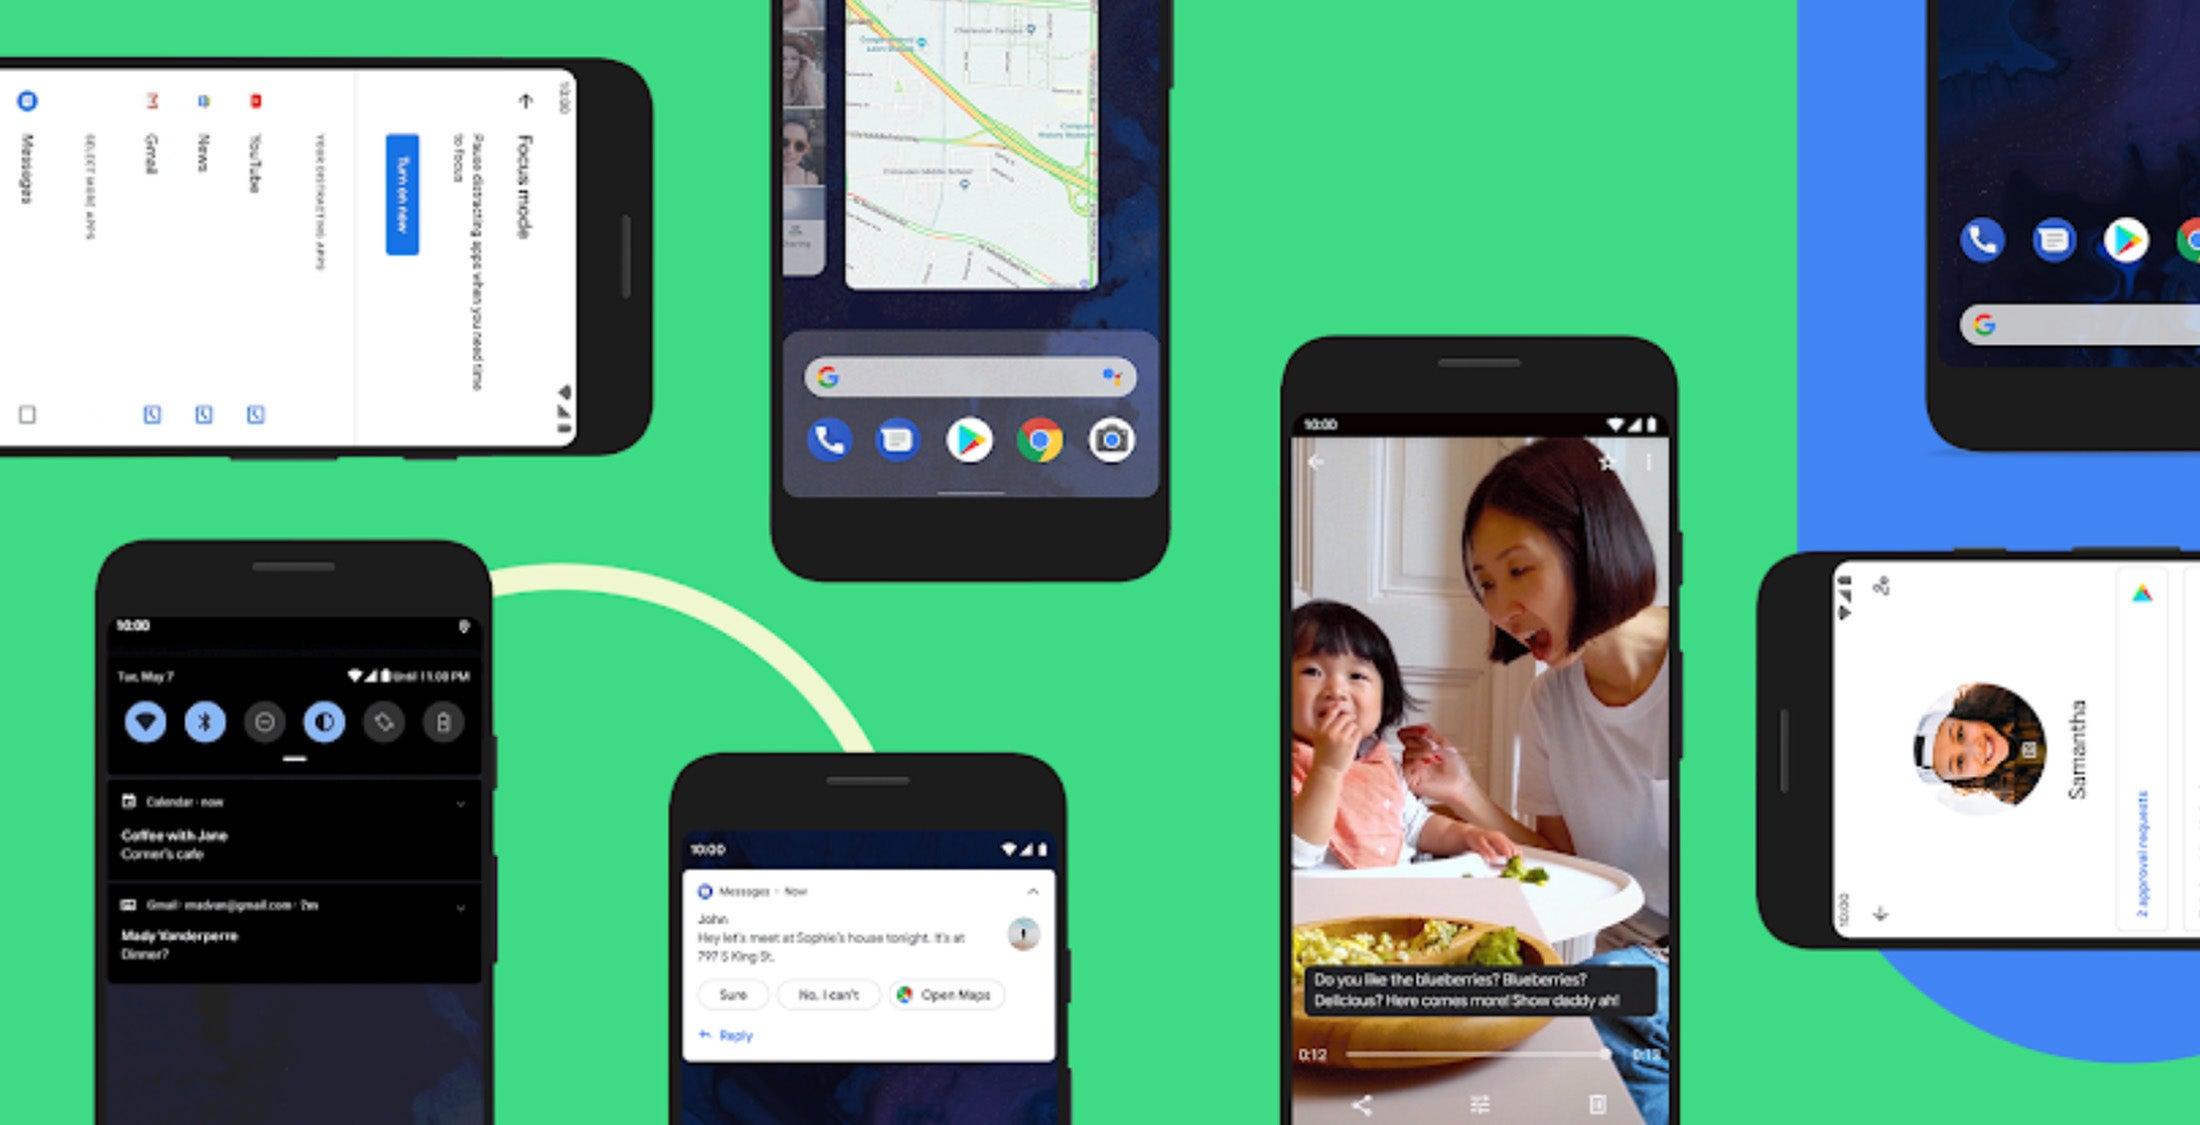 Google rolls out RCS messaging on Android, but can it save texting?